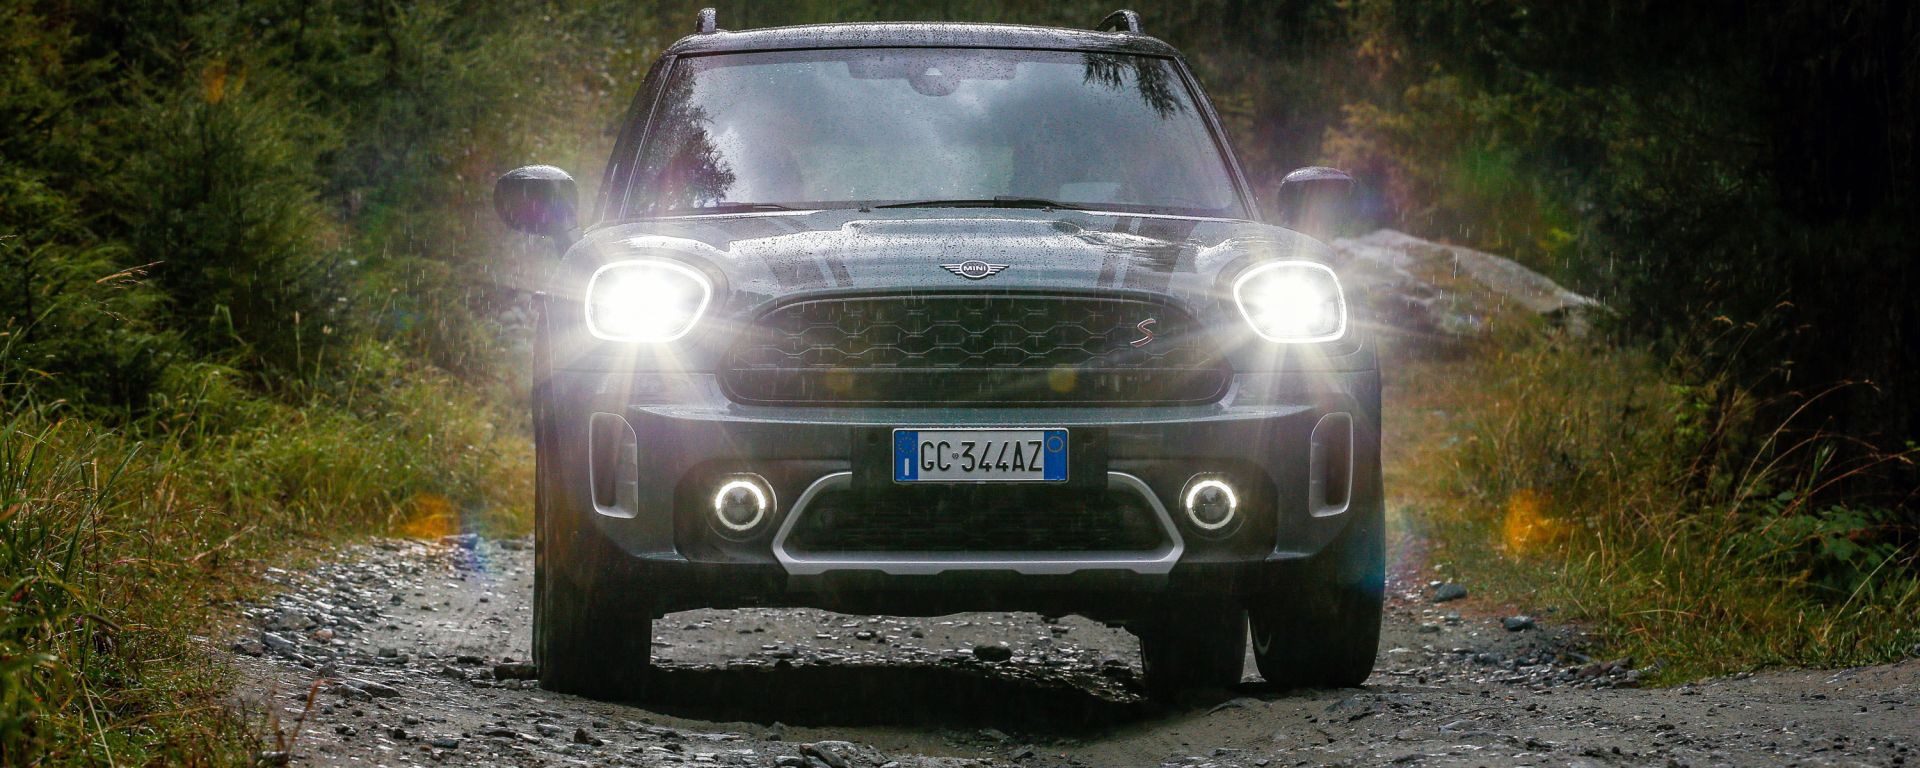 Mini Countryman 2020: la trazione integrale All4 è disponibile, ma non sempre necessaria